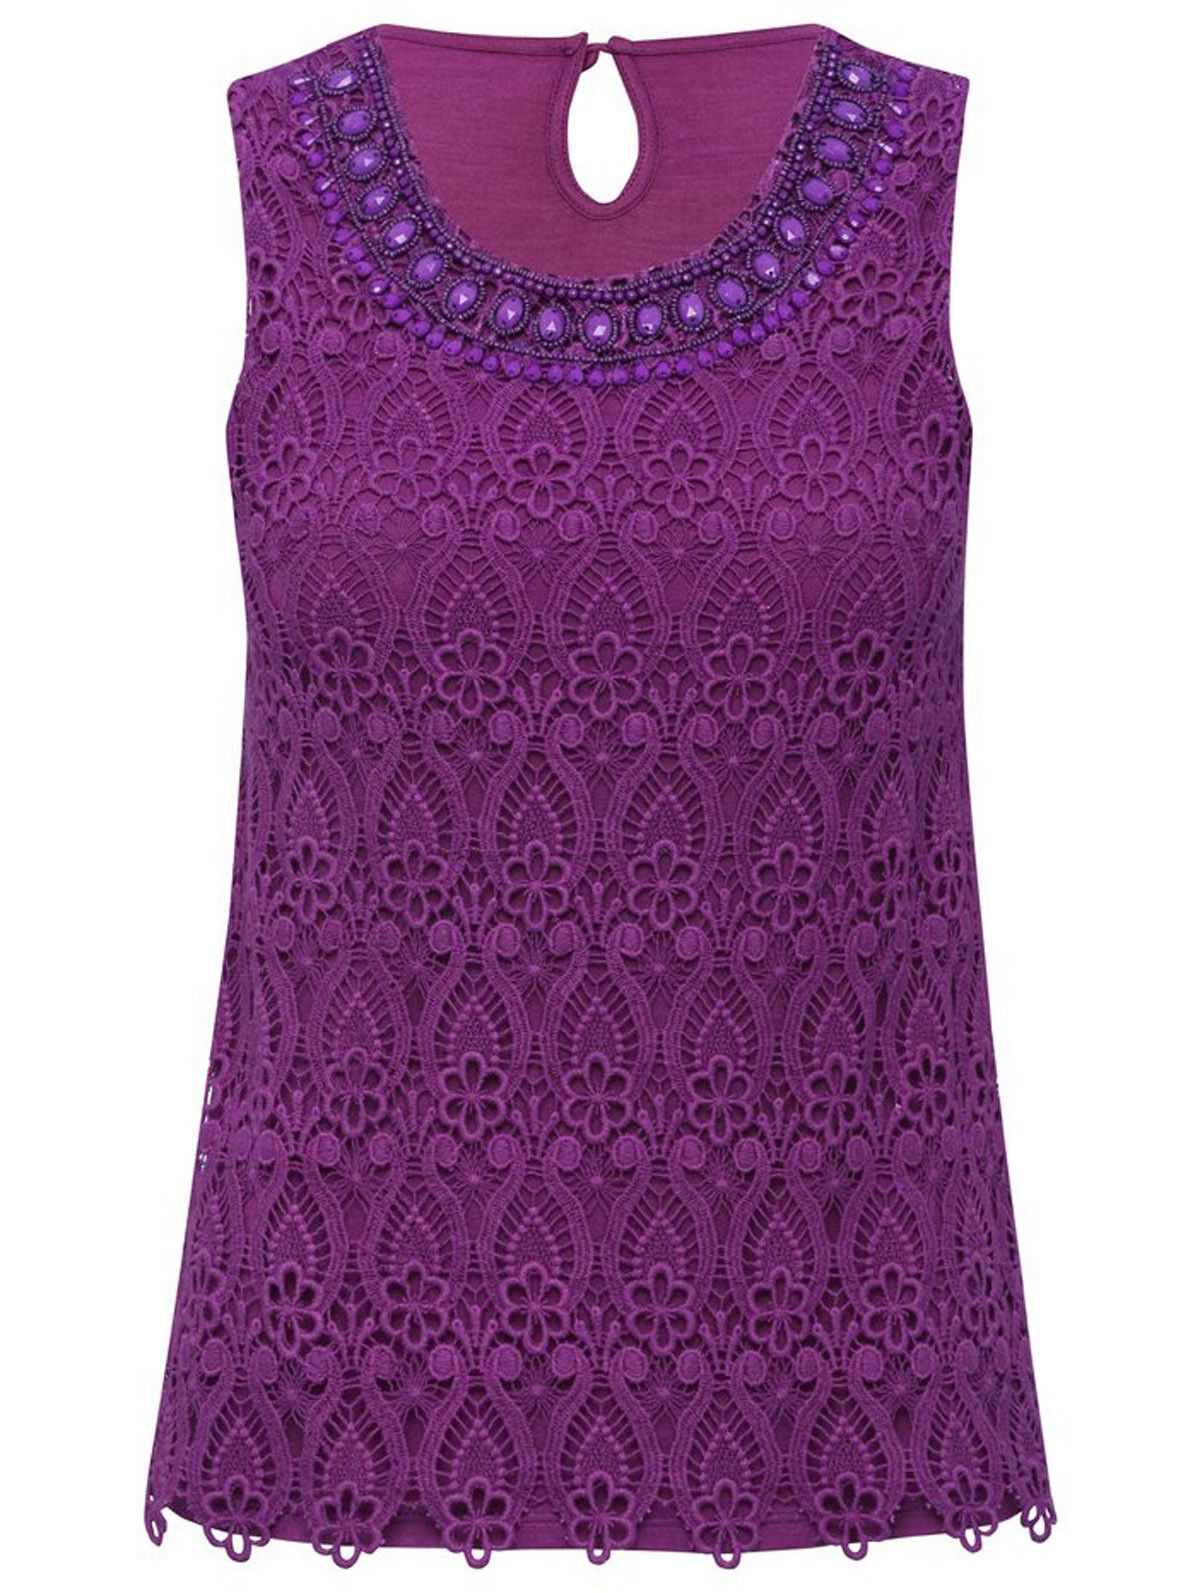 Purple Jewel Embellished Scallop Lace Top  #Oasislync #canadaonline #instagram #instalikes #kidsclothes #fashion #shoppingday #fashionista #fashionstyle #shoppingonline